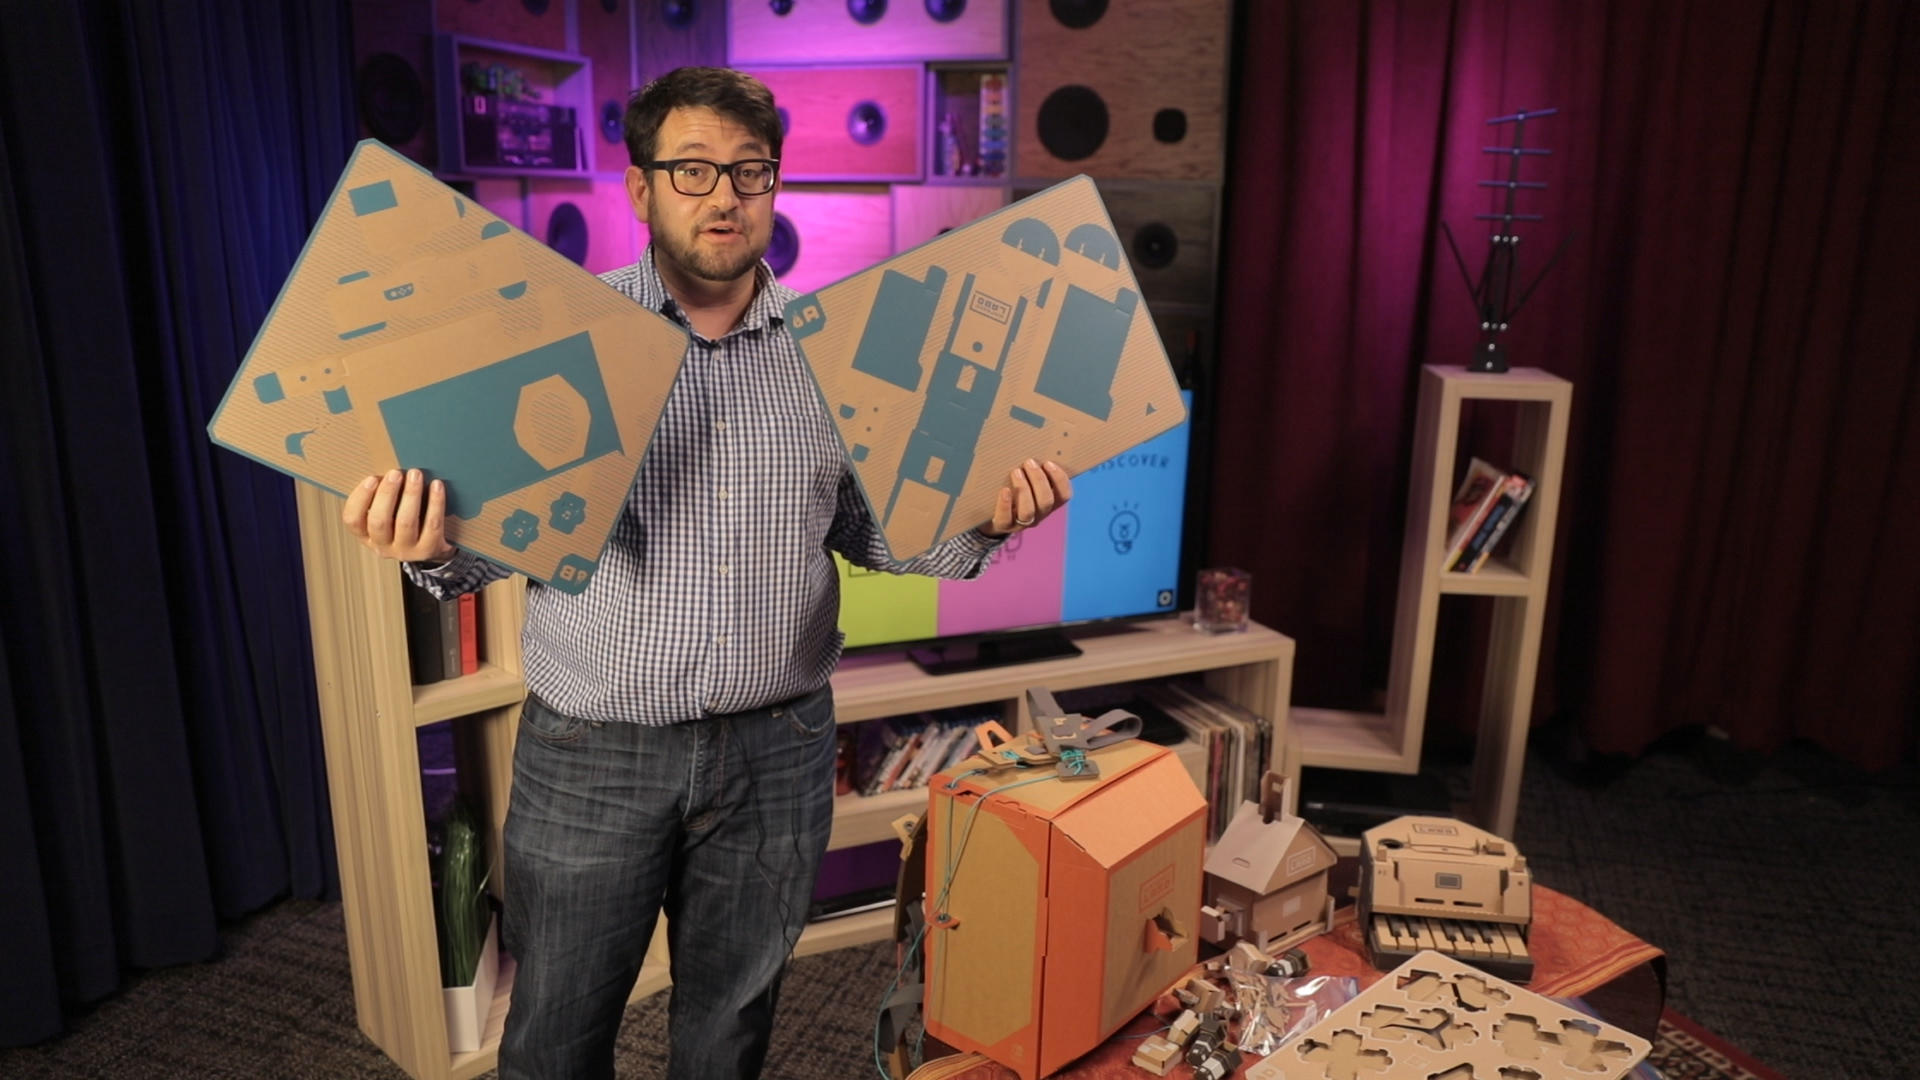 Video: A week with Nintendo Labo